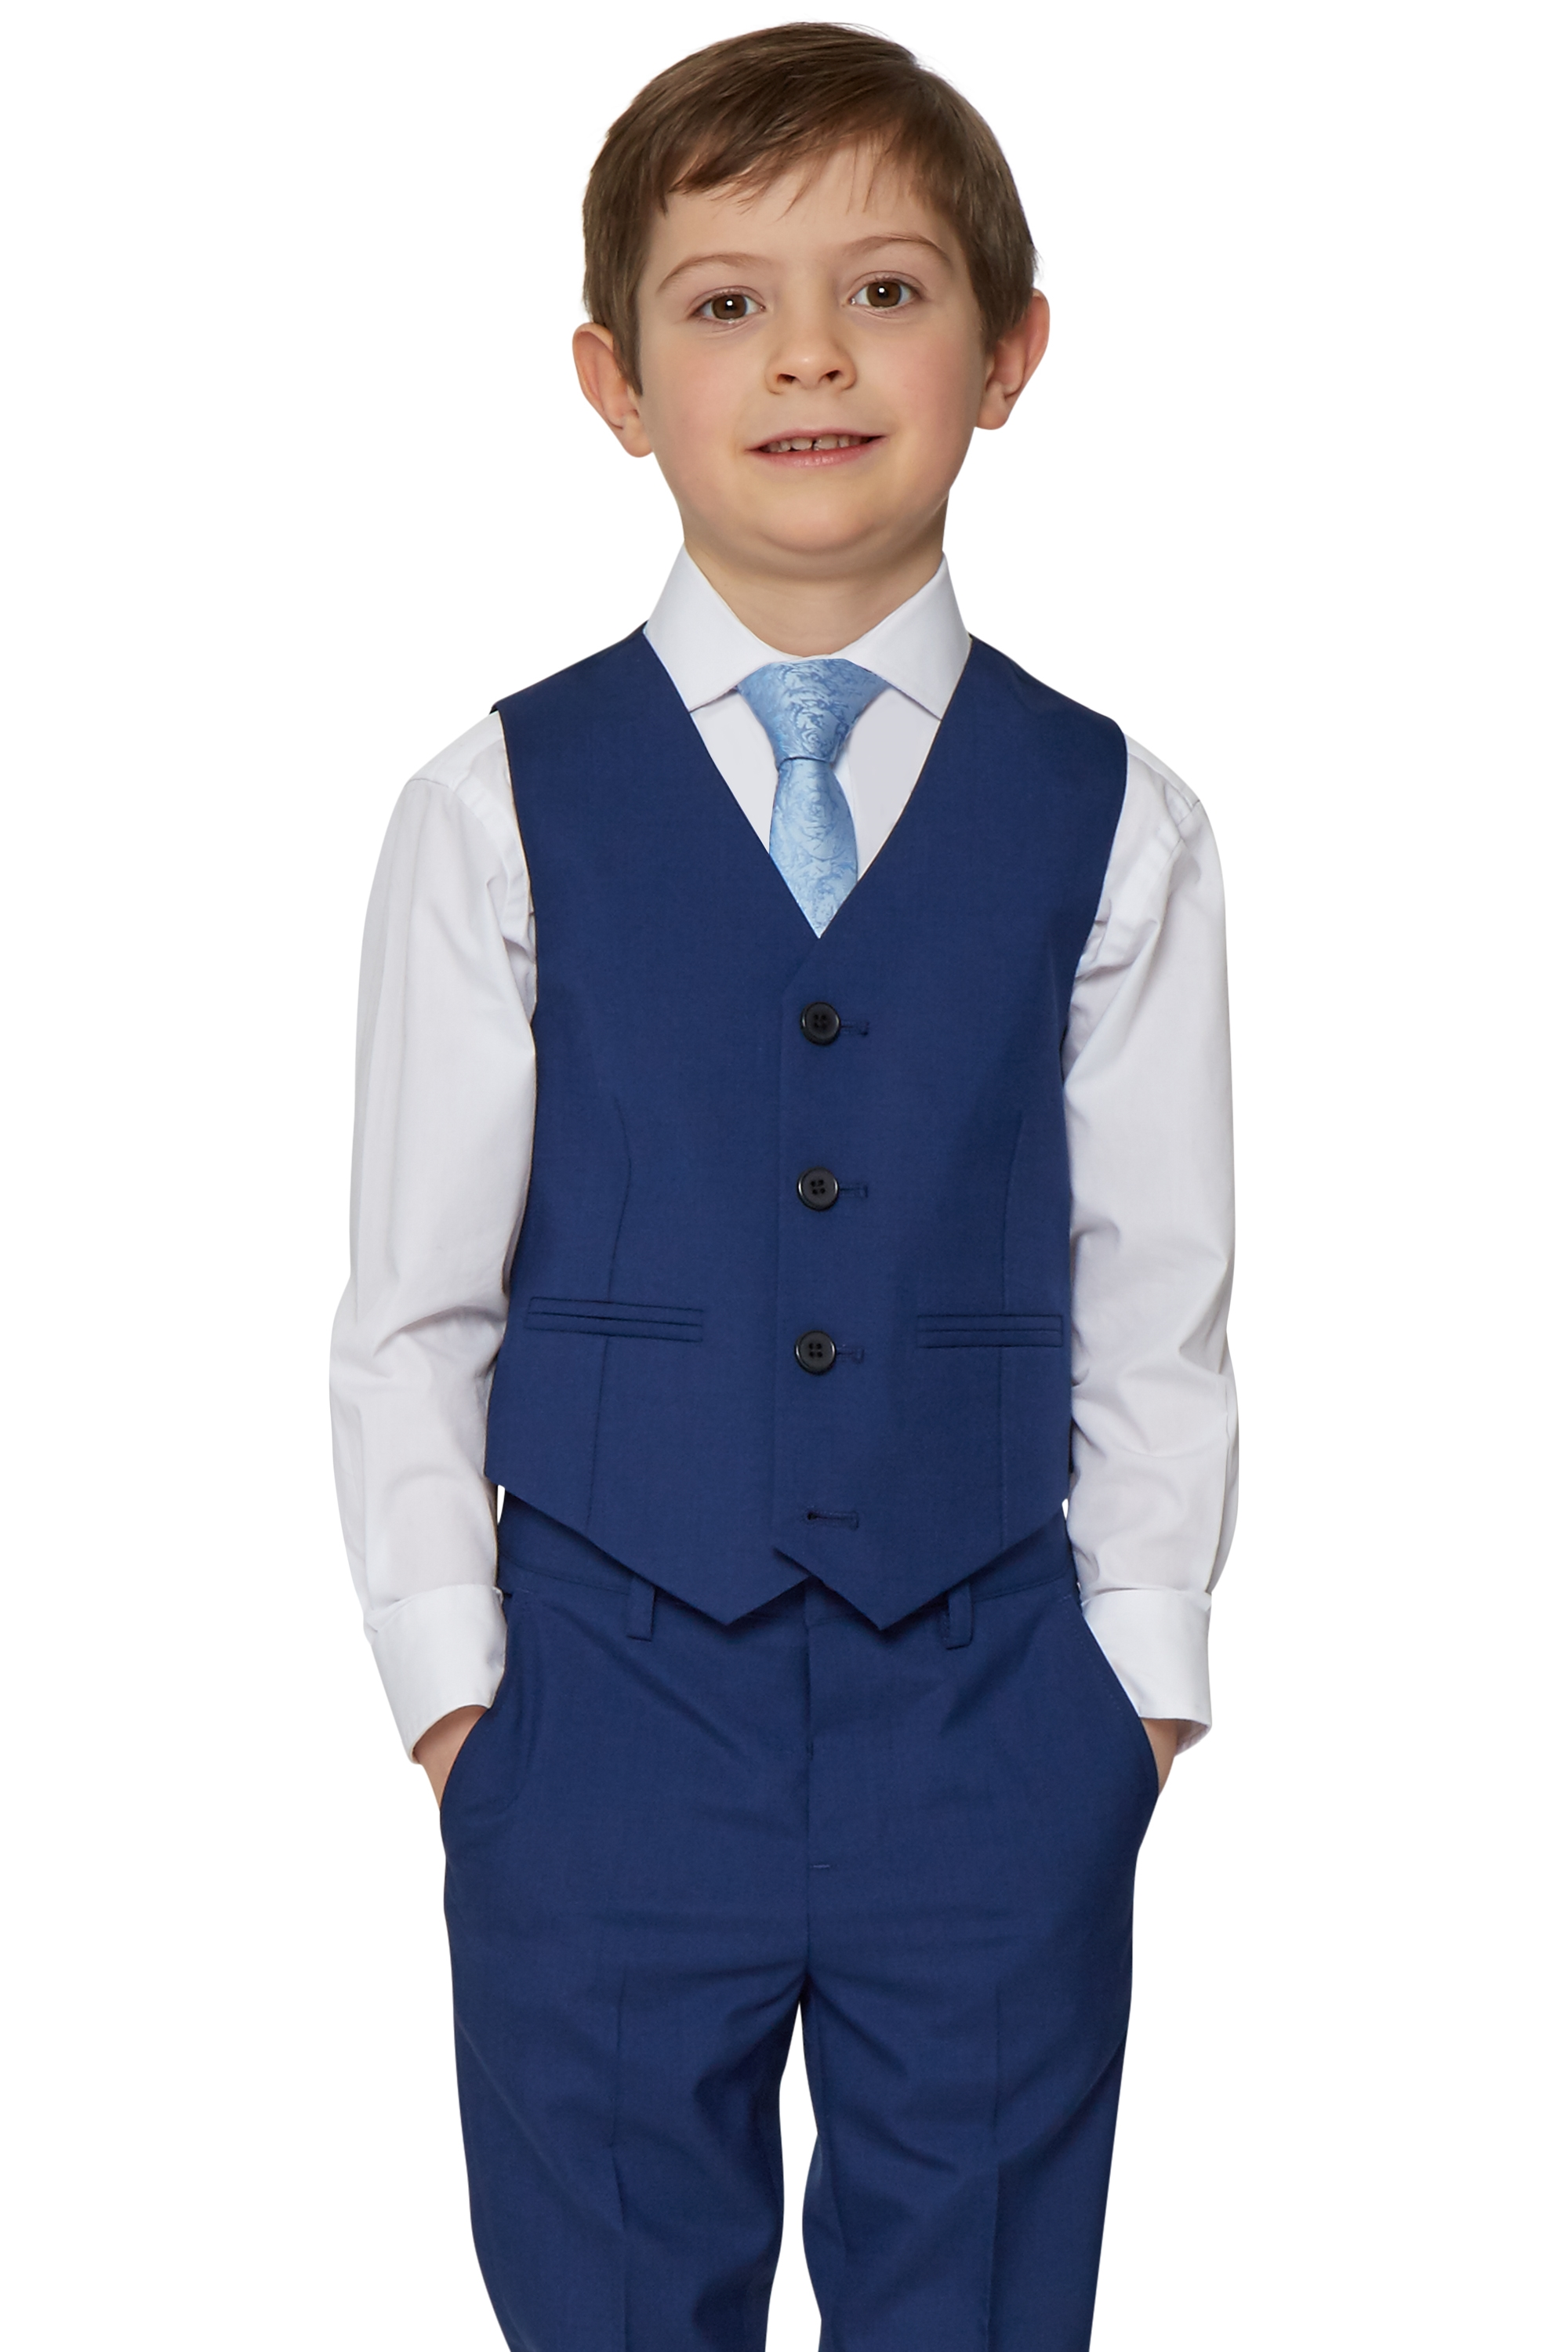 c6a2071bf51a French Connection Boys Formal Navy Blue Waistcoat 2 Pockets Kids ...